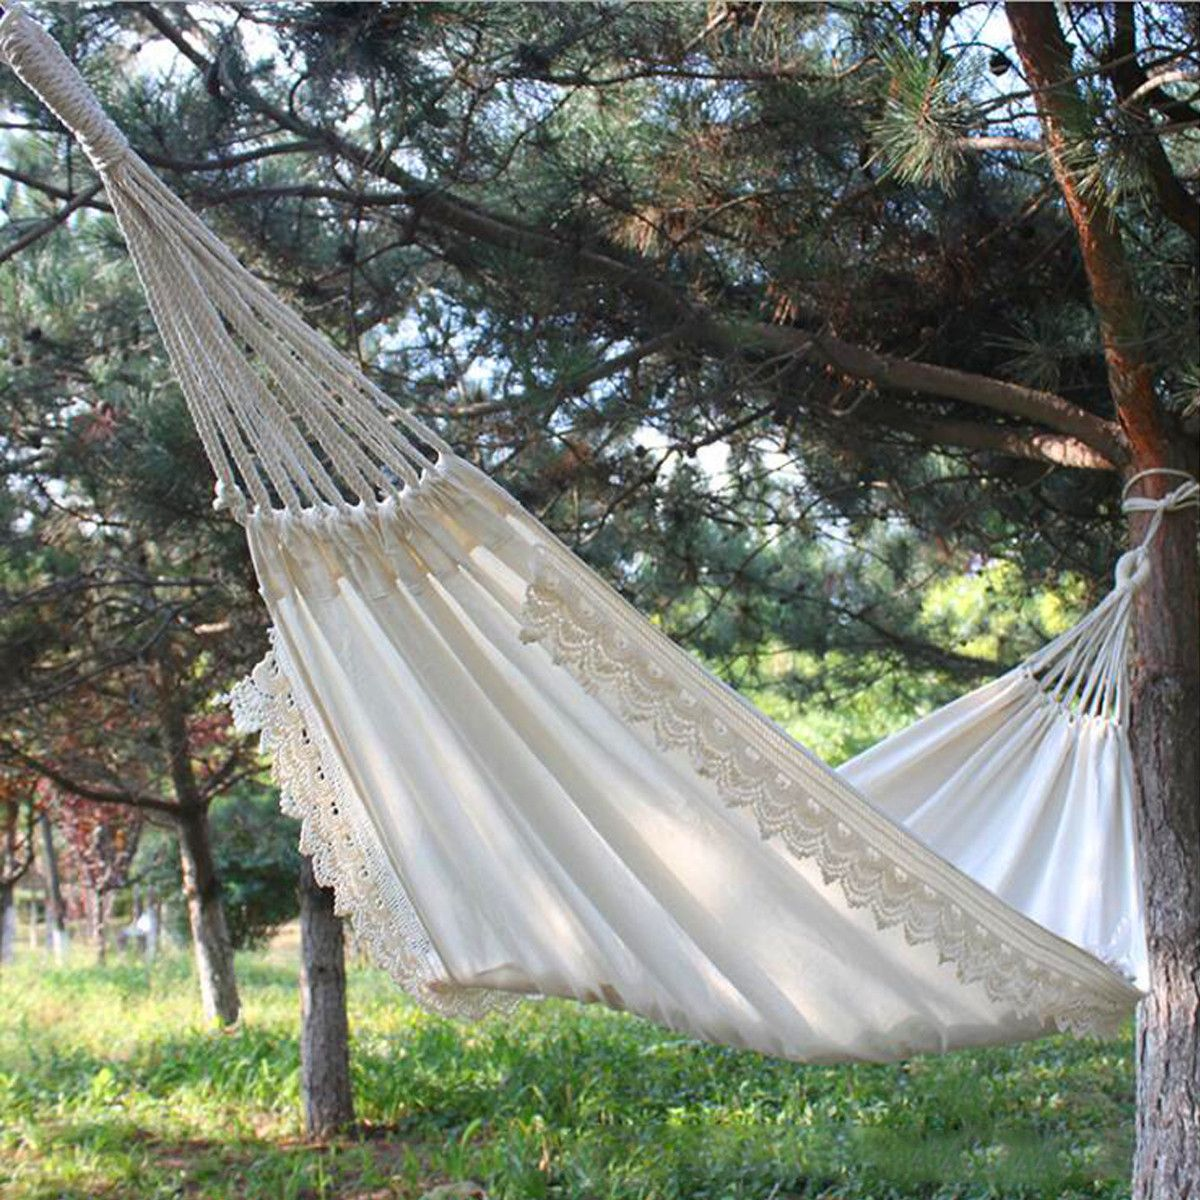 Sold 4197446154 Items Outdoor Camping Hammock Swing Safety Portable Hanging Chair Pure White Romantic Lace For Travel Hiking Garden Hammock Swing Hammock Garden Swing Hammock